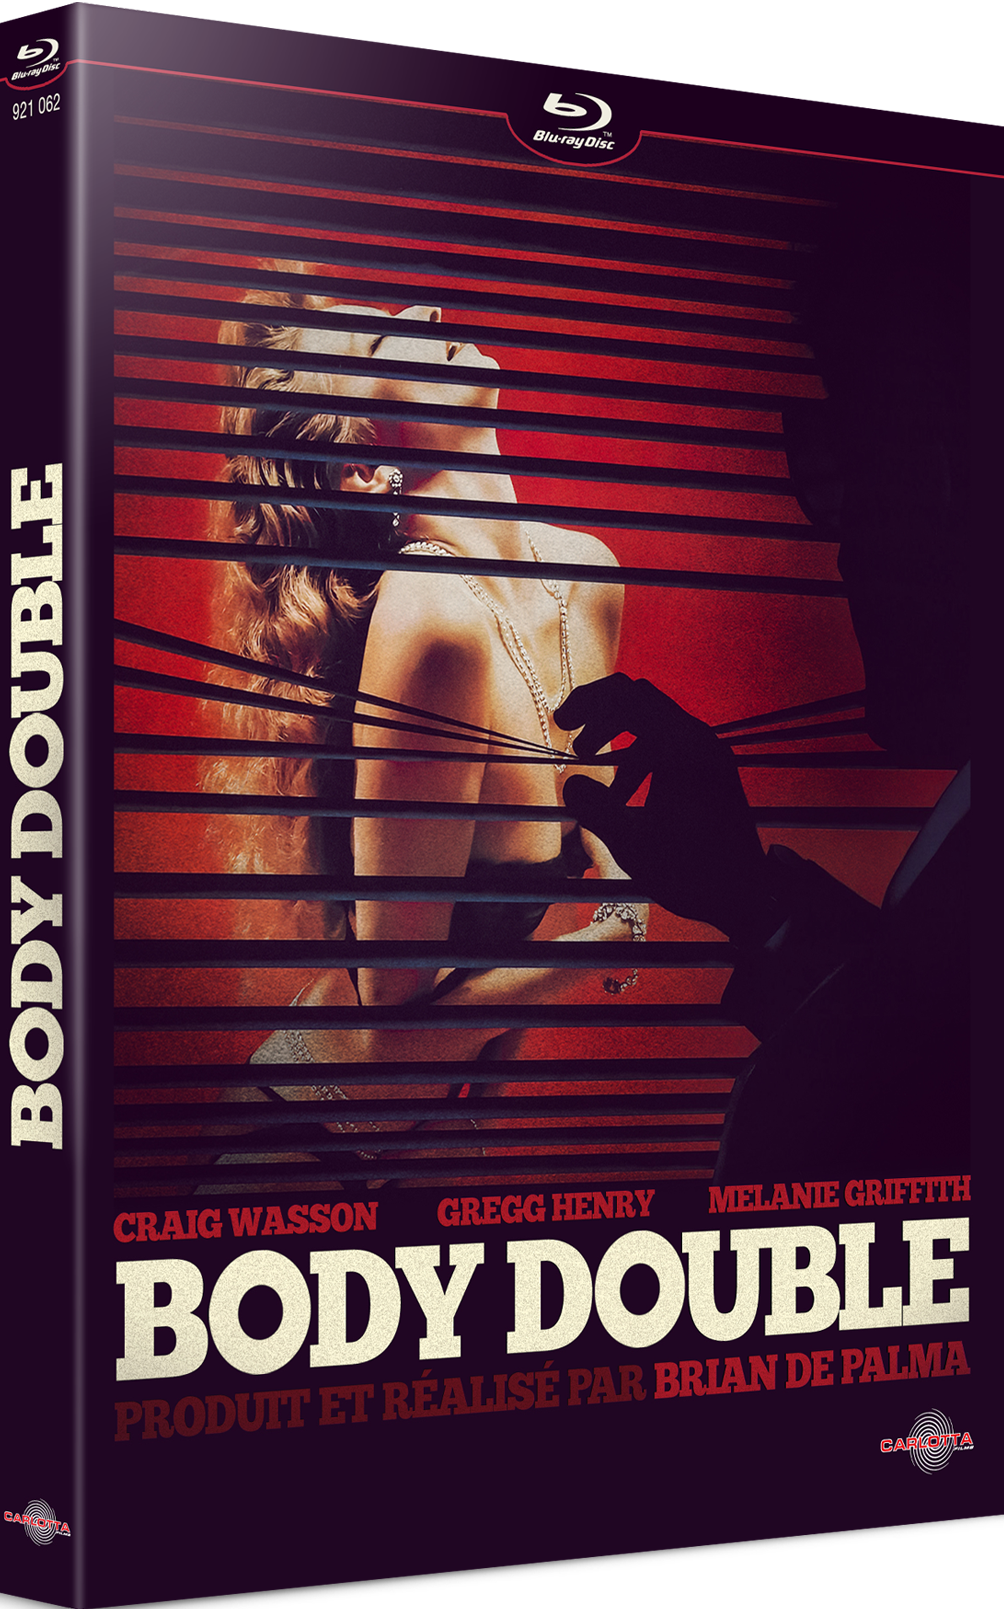 Body Double de Brian de Palma - CARLOTTA FILMS - La Boutique